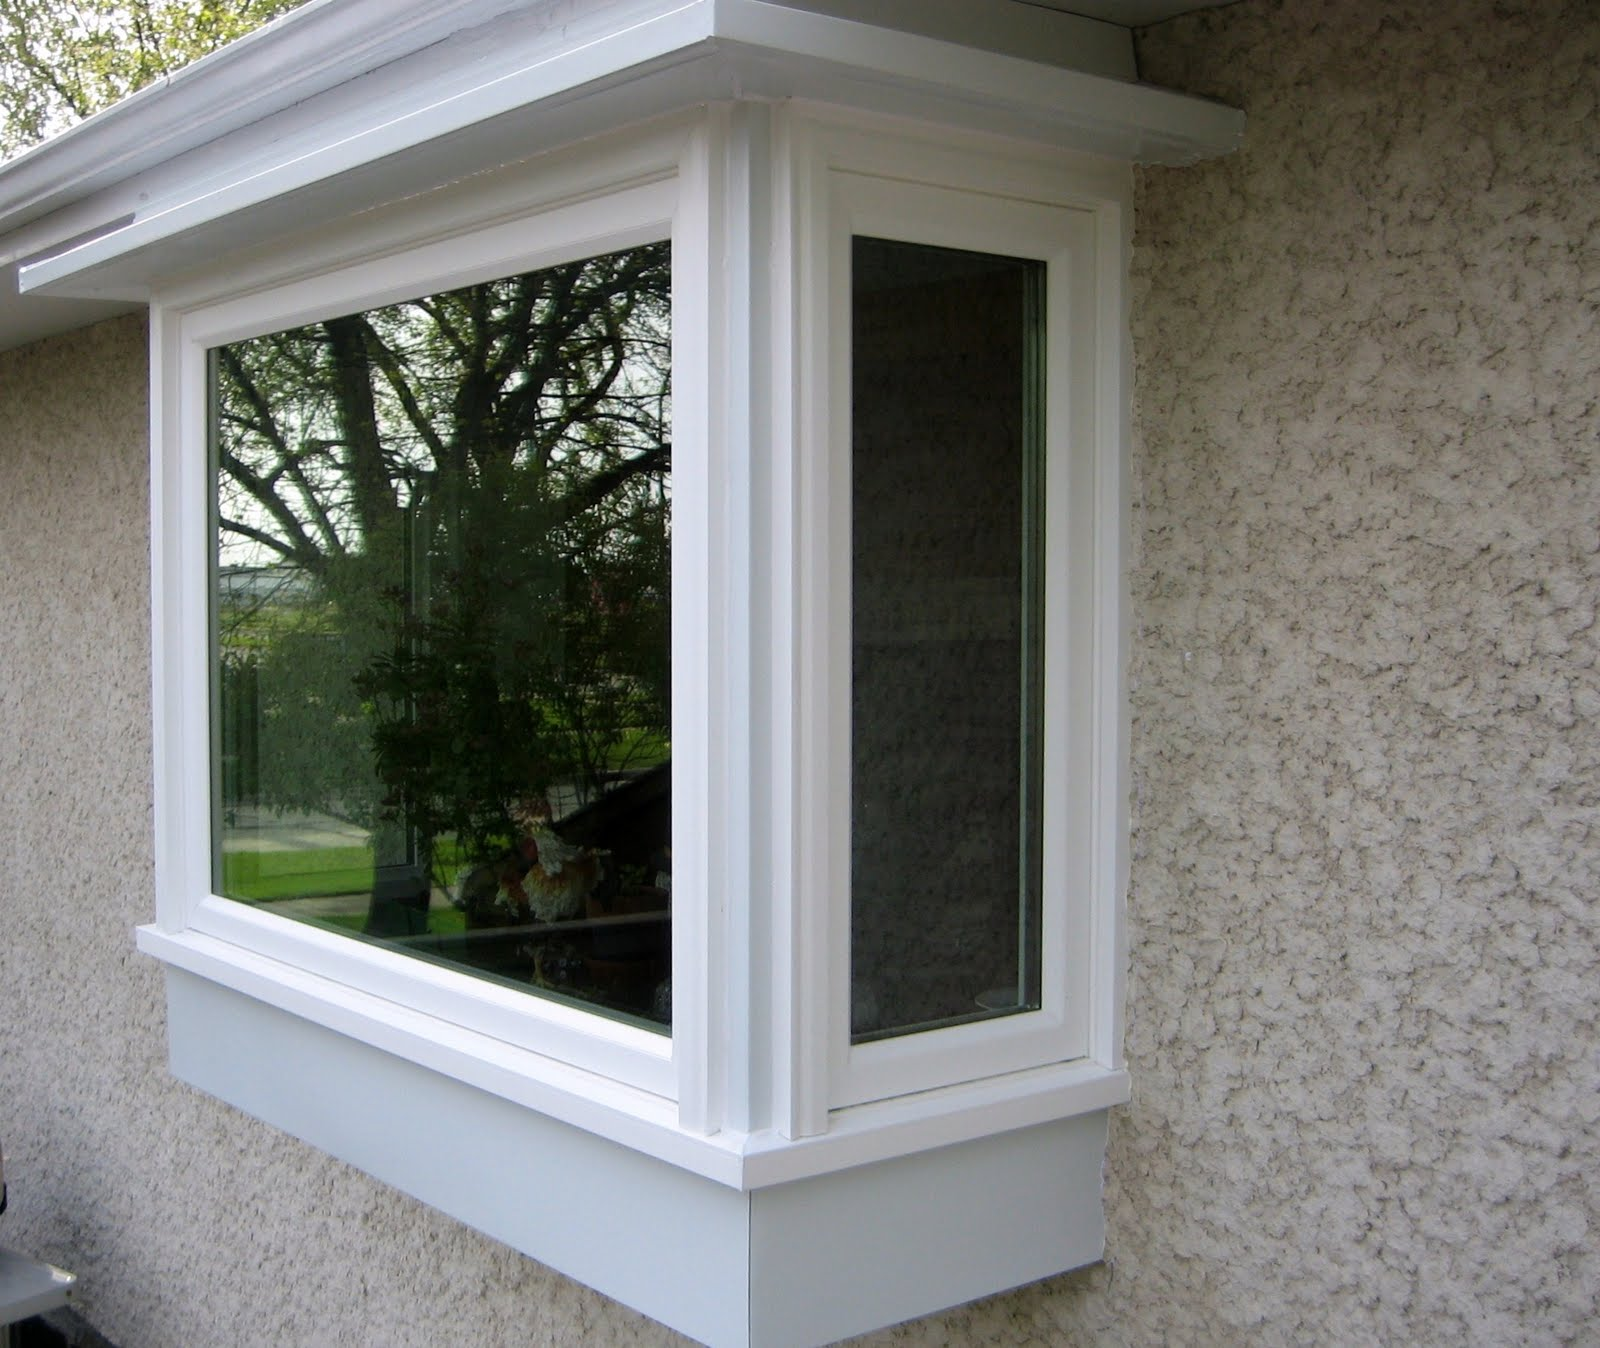 Box Bay Window Design Pictures to Pin on Pinterest - PinsDaddy